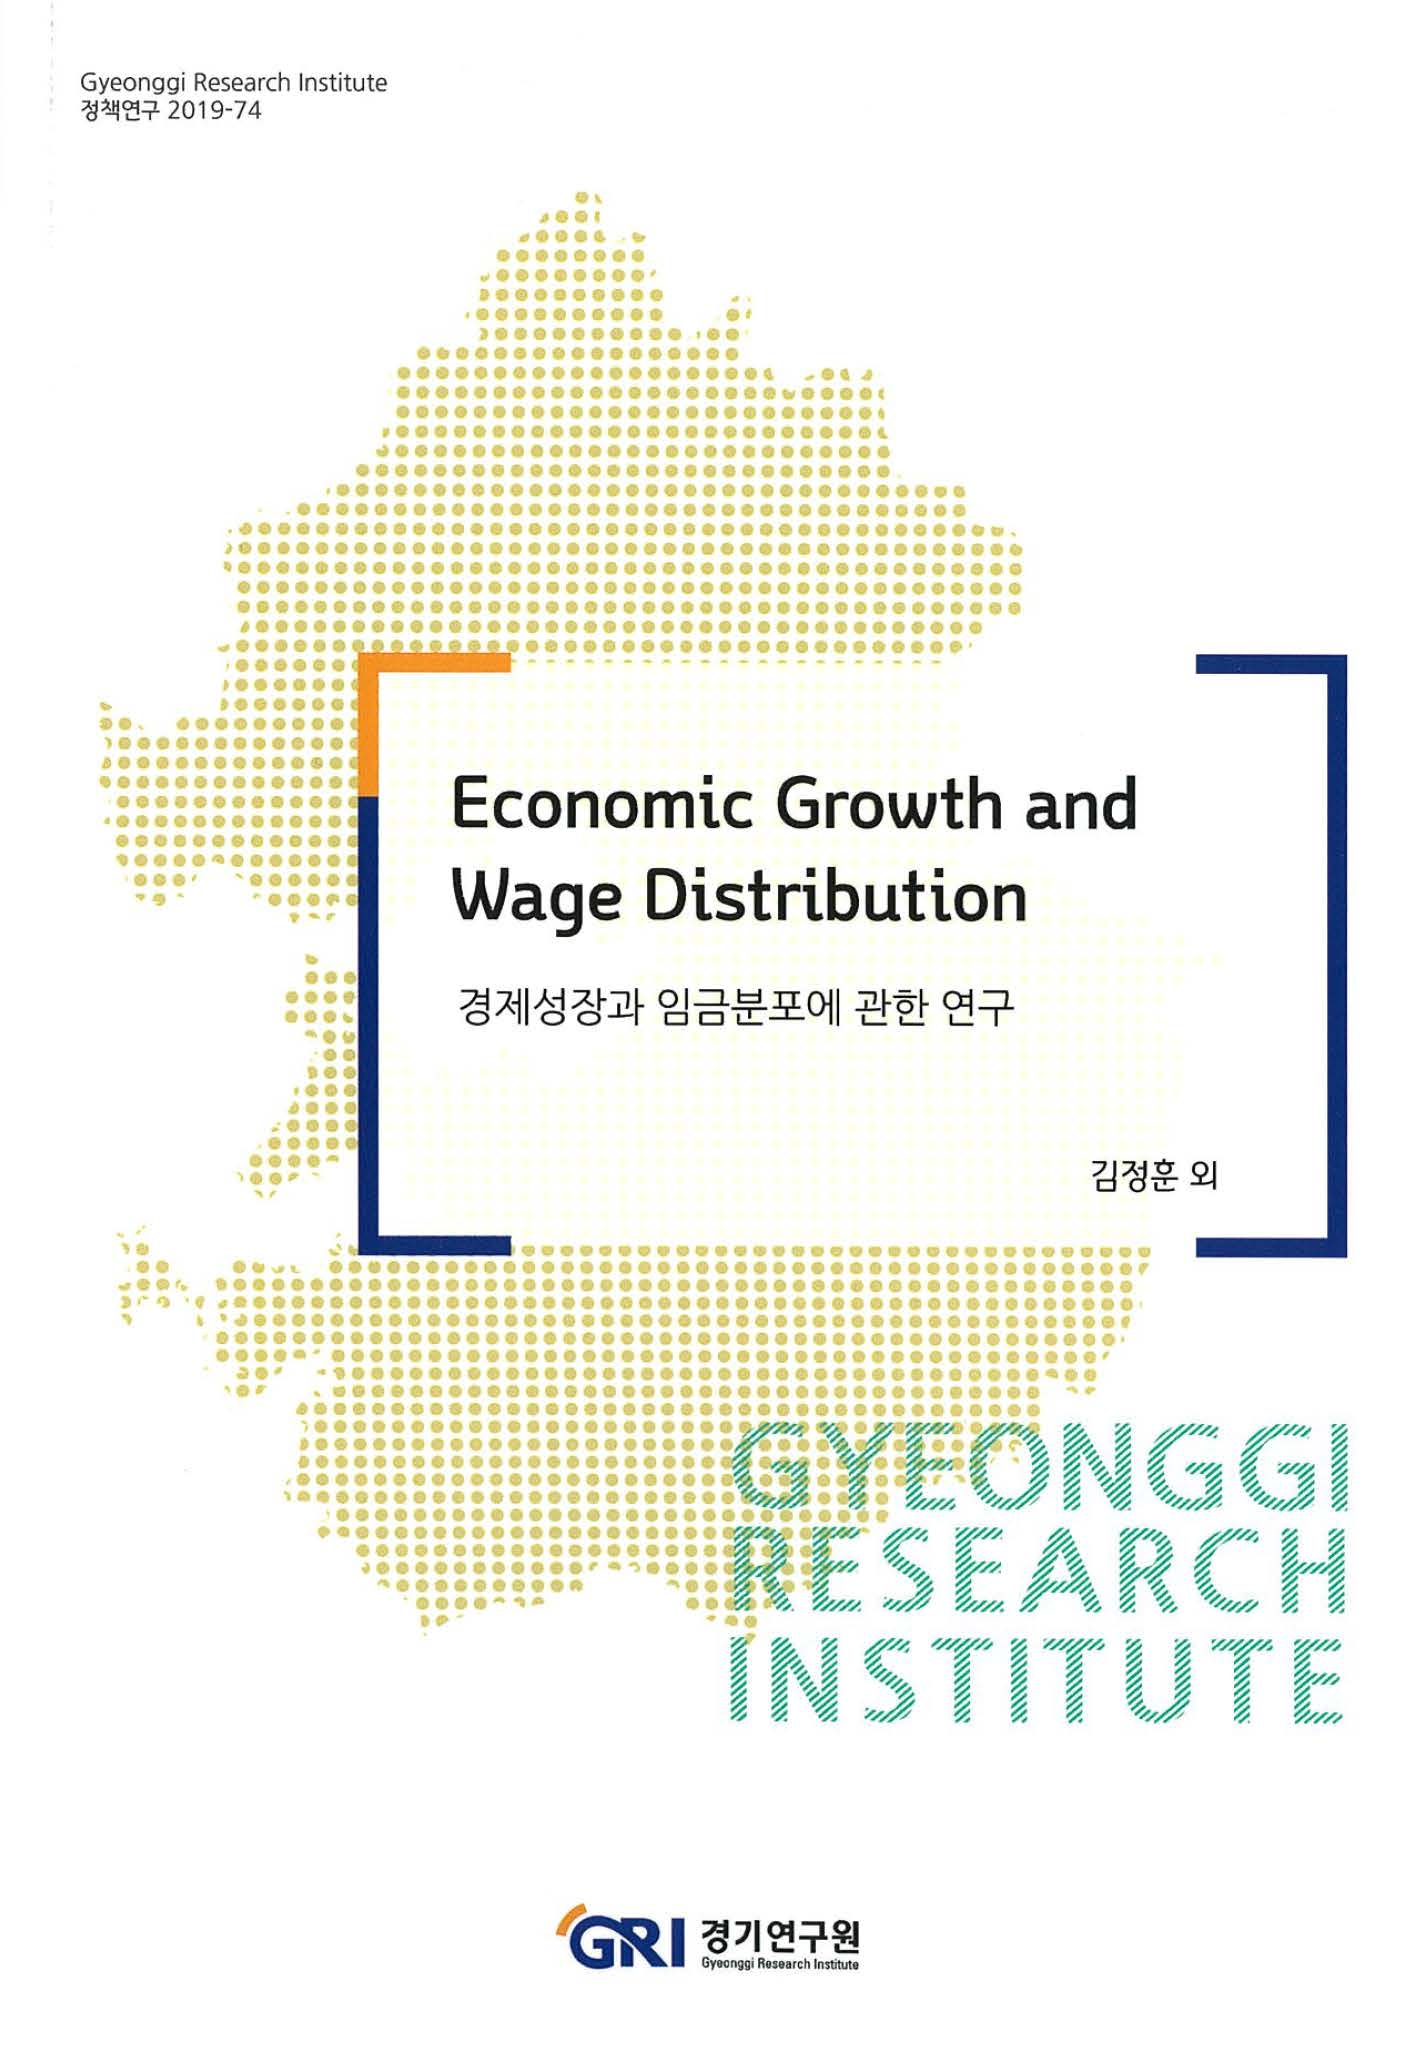 Economic Growth and Wage Distribution